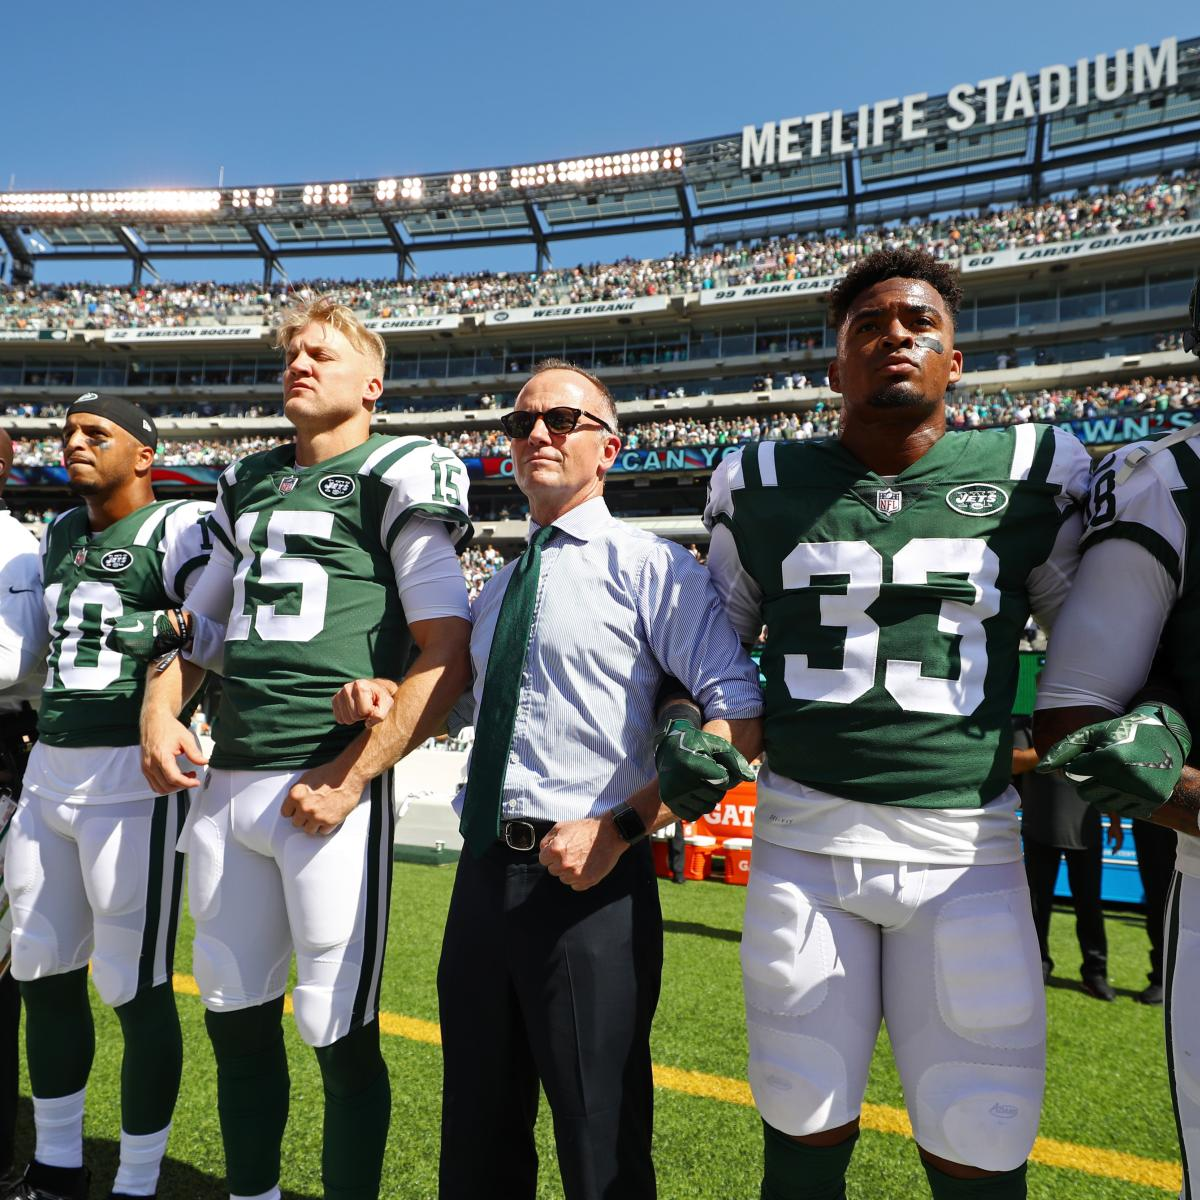 Jets Owner Christopher Johnson Says He Will Pay Players' Anthem-Related Fines